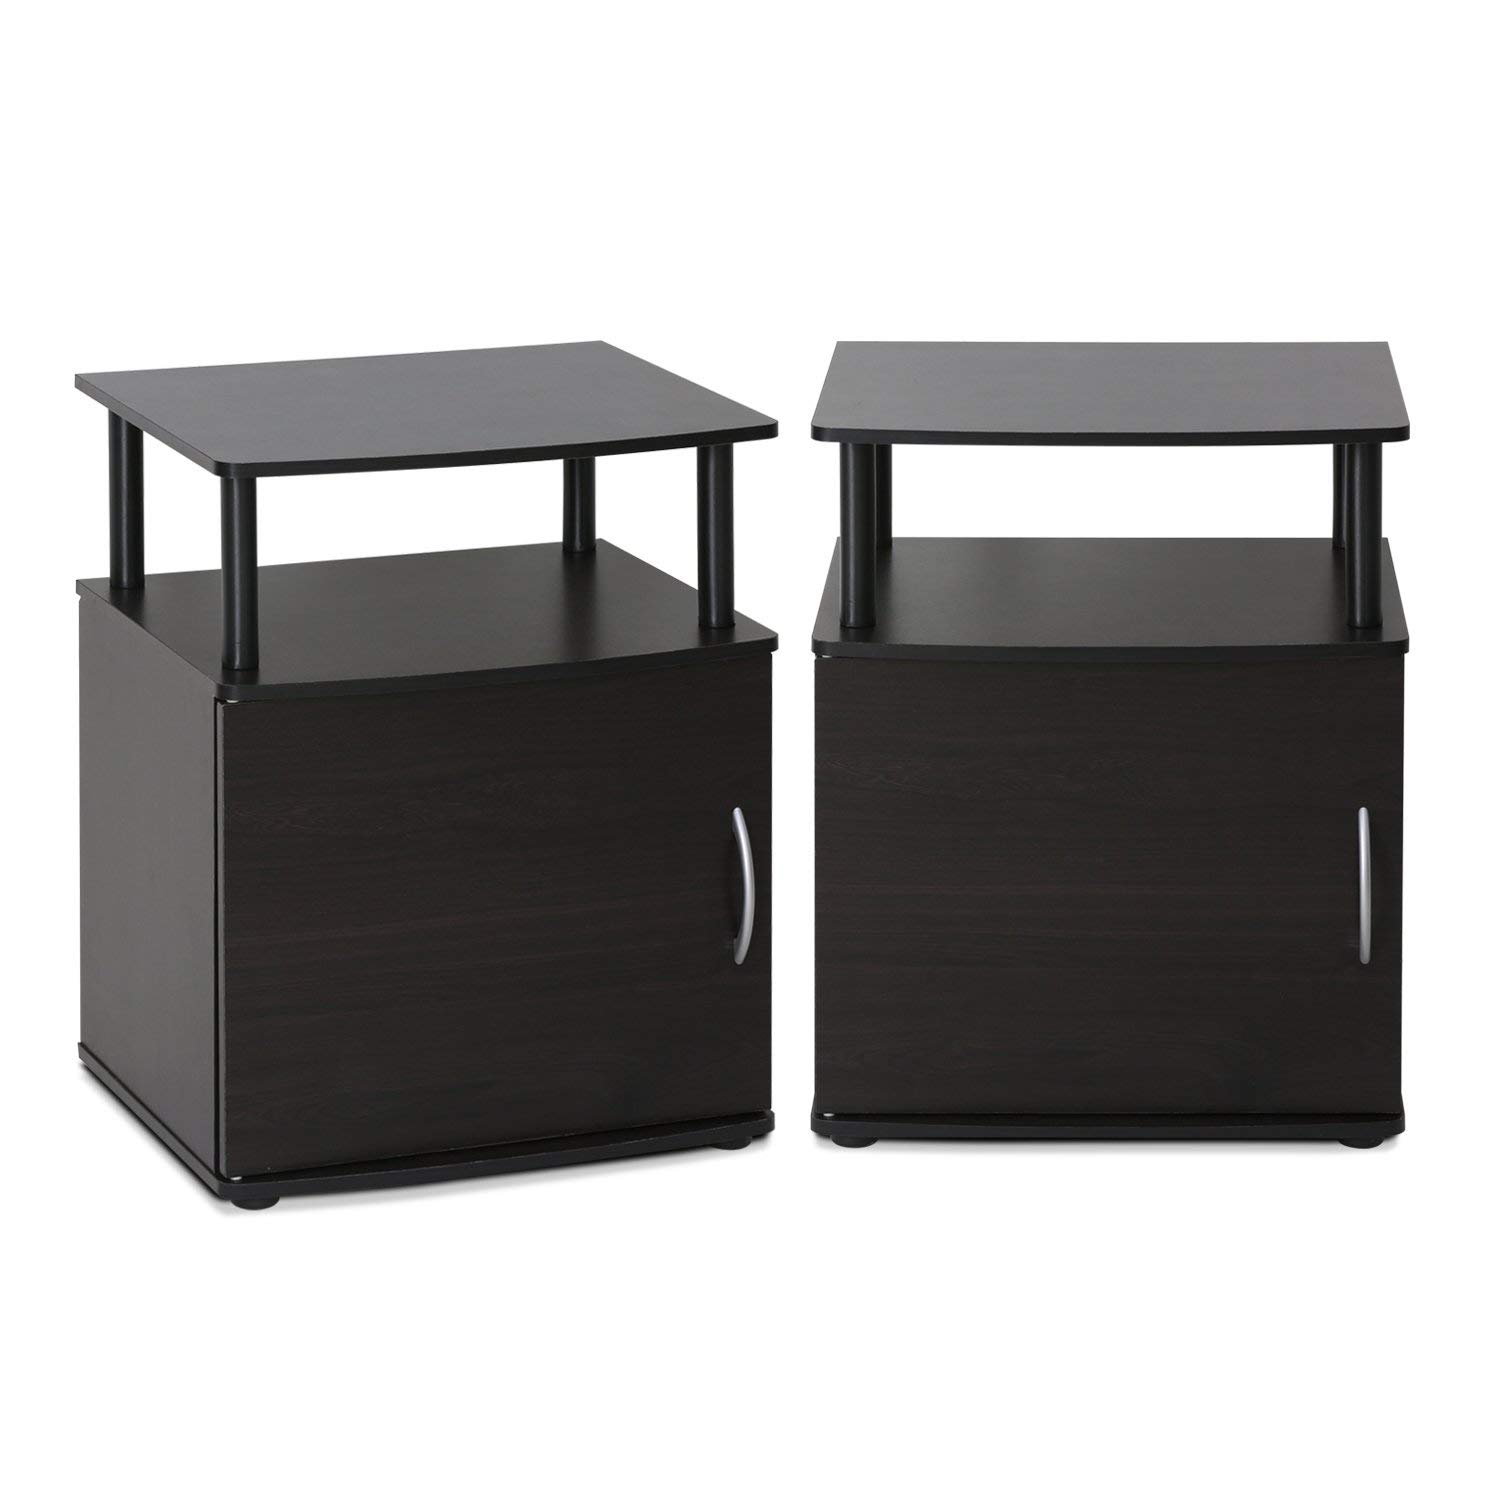 black storage furniture patio brown outdoor side table probably terrific best end tables and backyard accent unique modern coffee for sectional kitchen hardware pulls antique